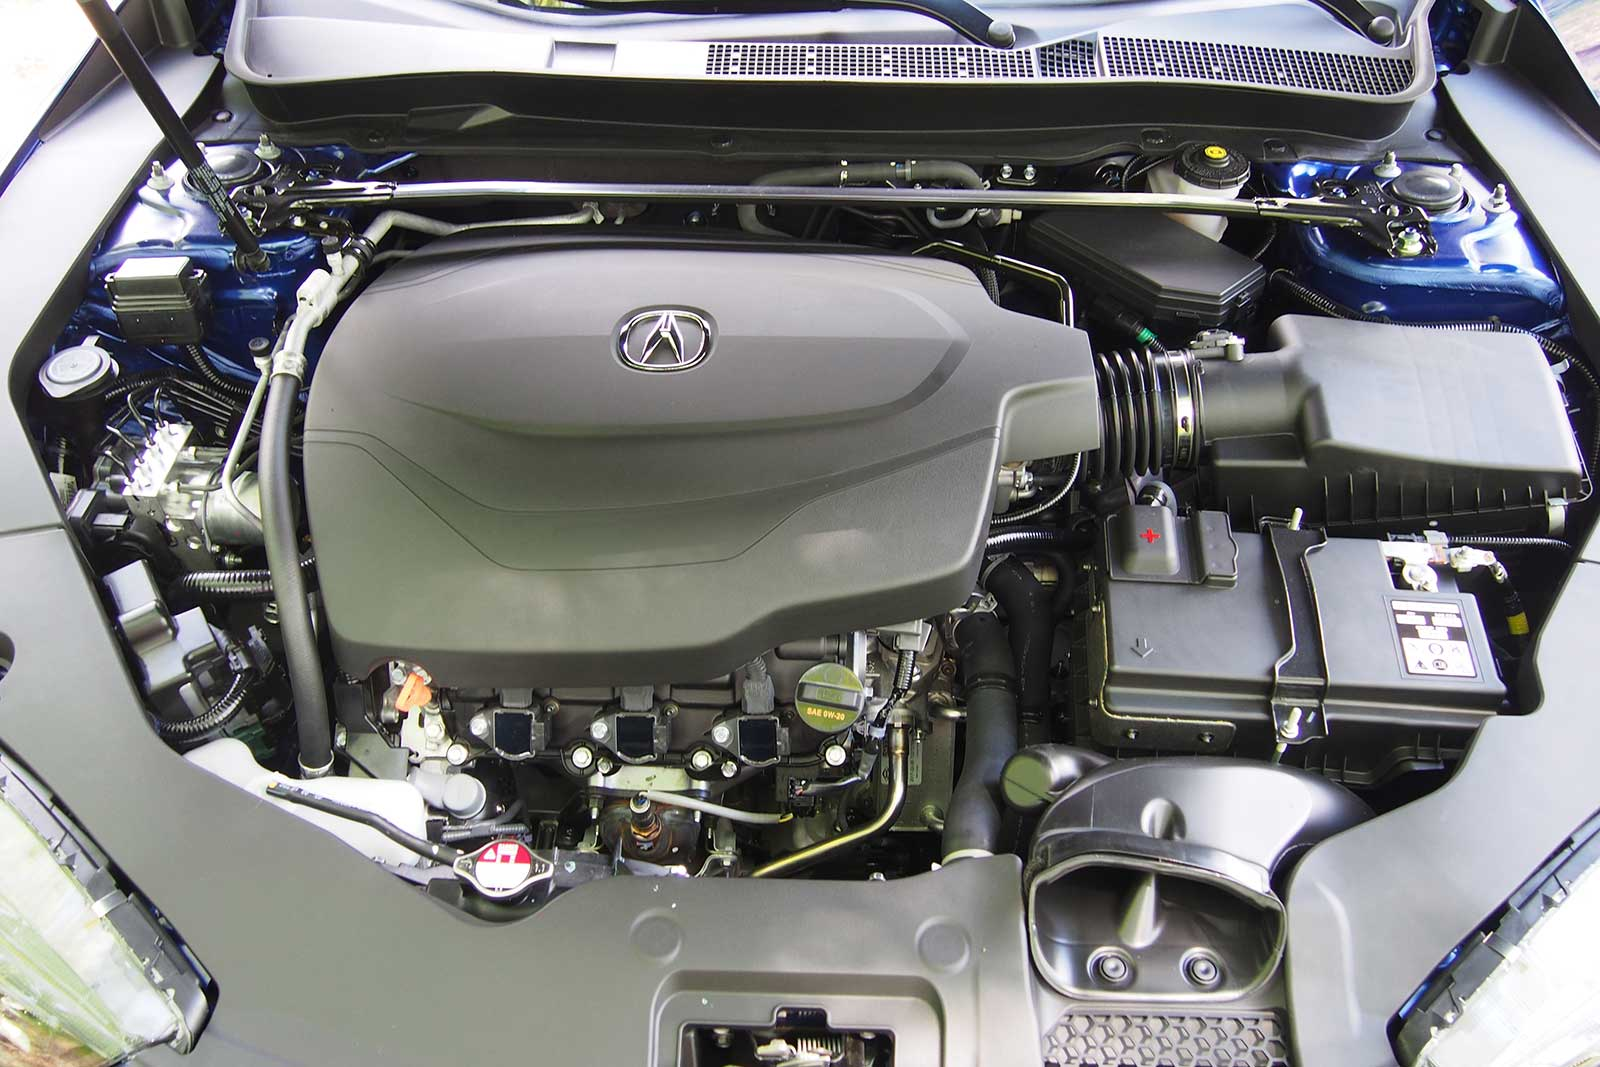 royaljapanesemotors quality complete details acura high engines jdm performance top engine com